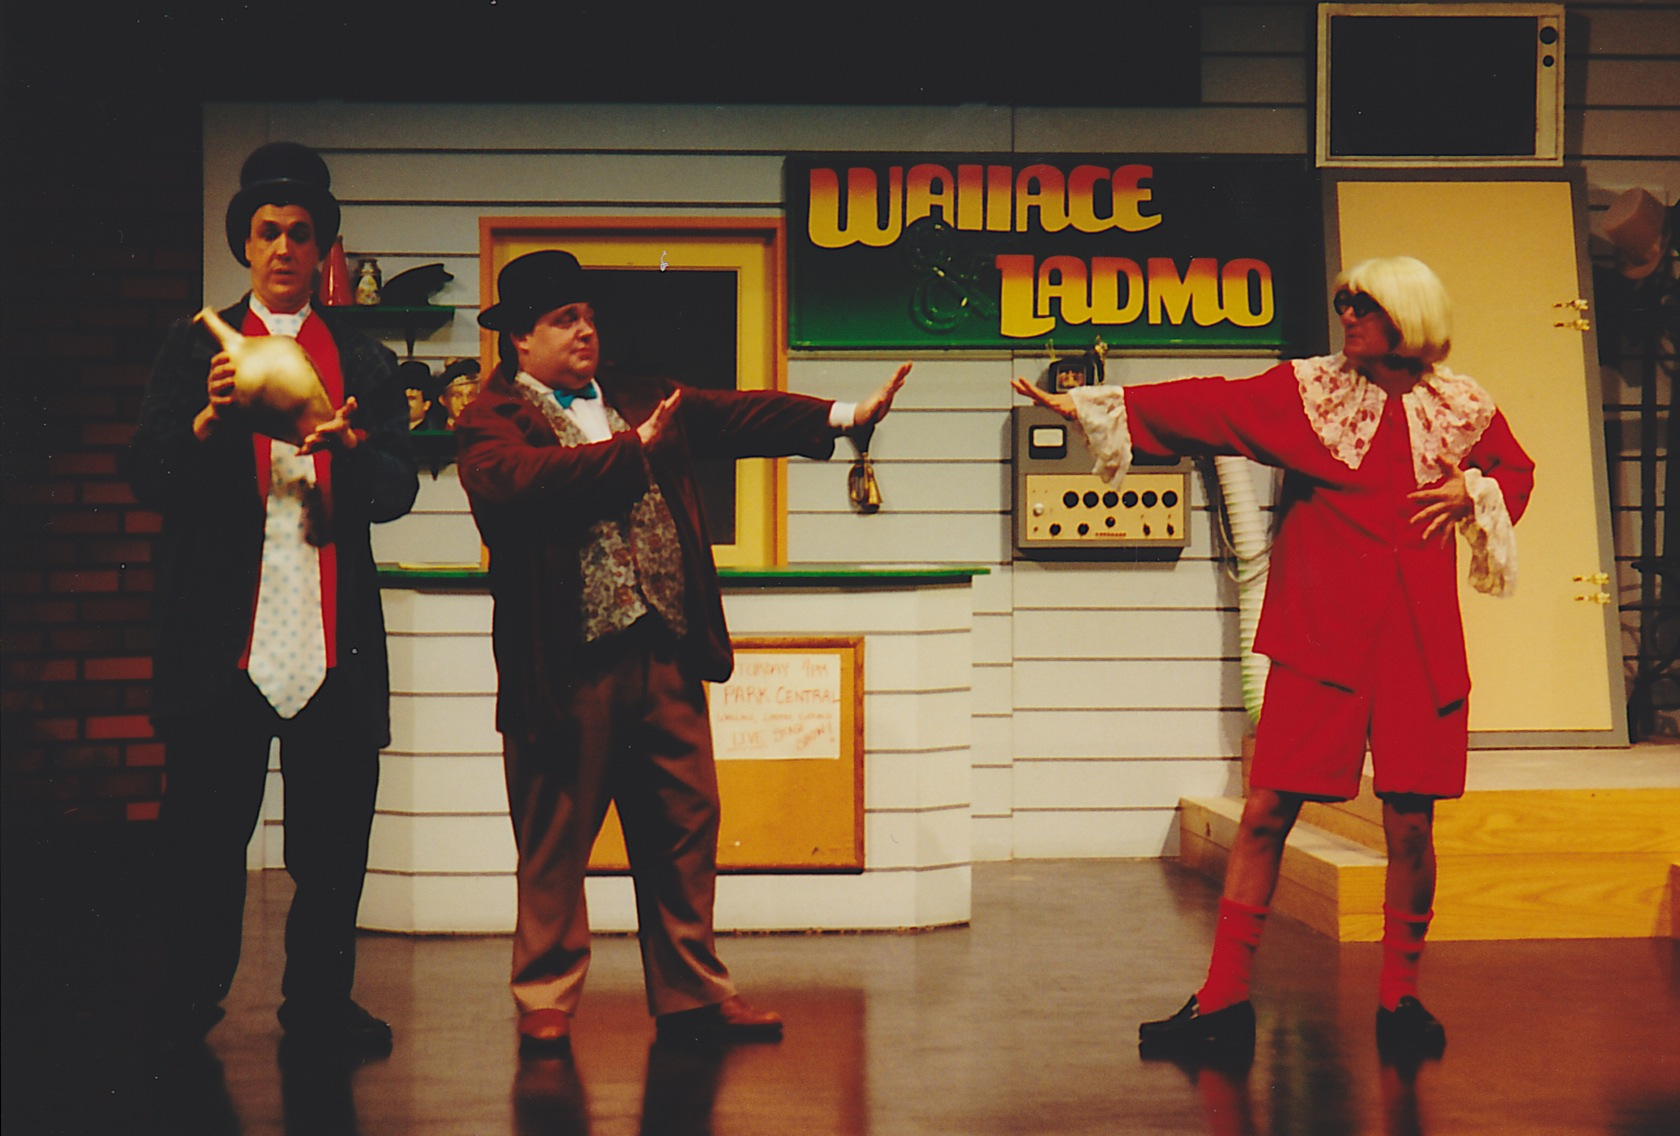 """Hamilton Mitchell is Ladmo, Wes Marin is Wallace and Bob Sorenson is Gerald in Ben Tyler's """"The Wallace and Ladmo Show"""" (2000) at Desert Foothills Theatre. (Photo Credit Unknown)"""